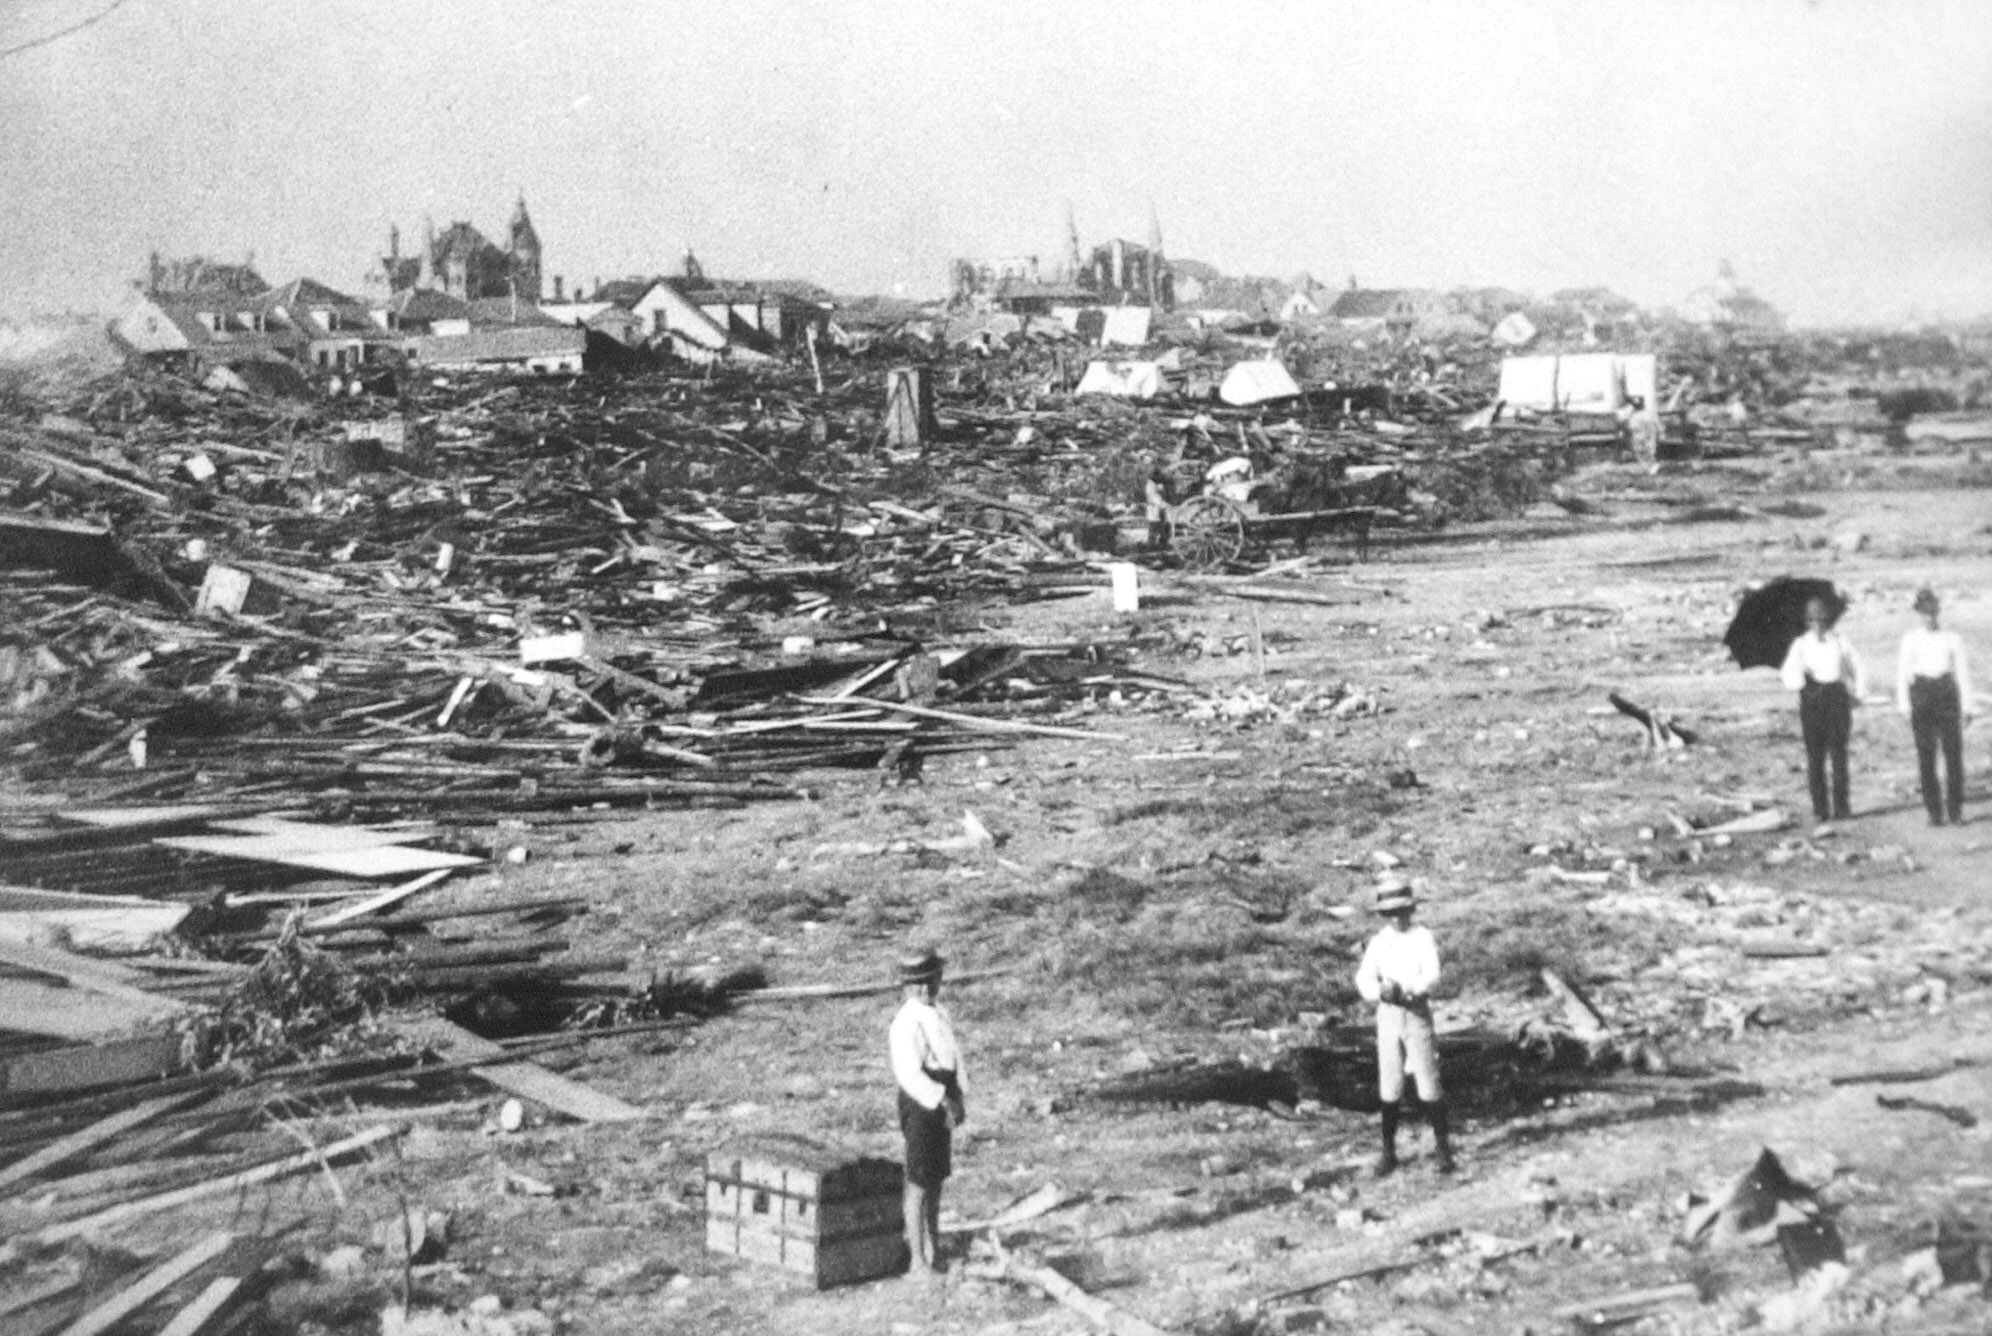 In 1900, a large part of Galveston, Texas, was reduced to rubble and nearly 10,000 people were killed in the deadliest hurricane to ever hit the United States.